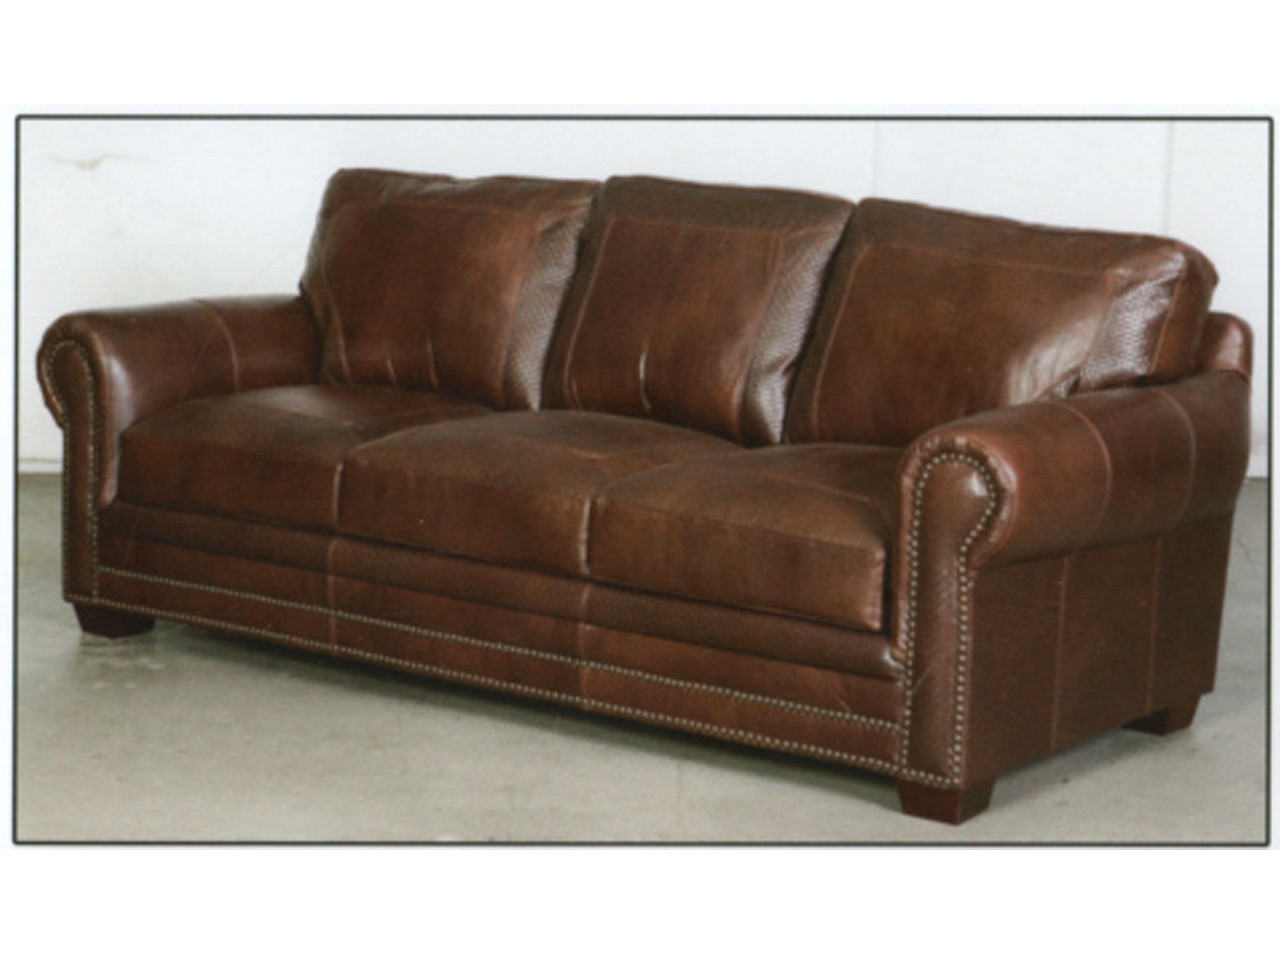 Leather Chair And Ottoman 9650 Basket Weave Brown Leather Sofa